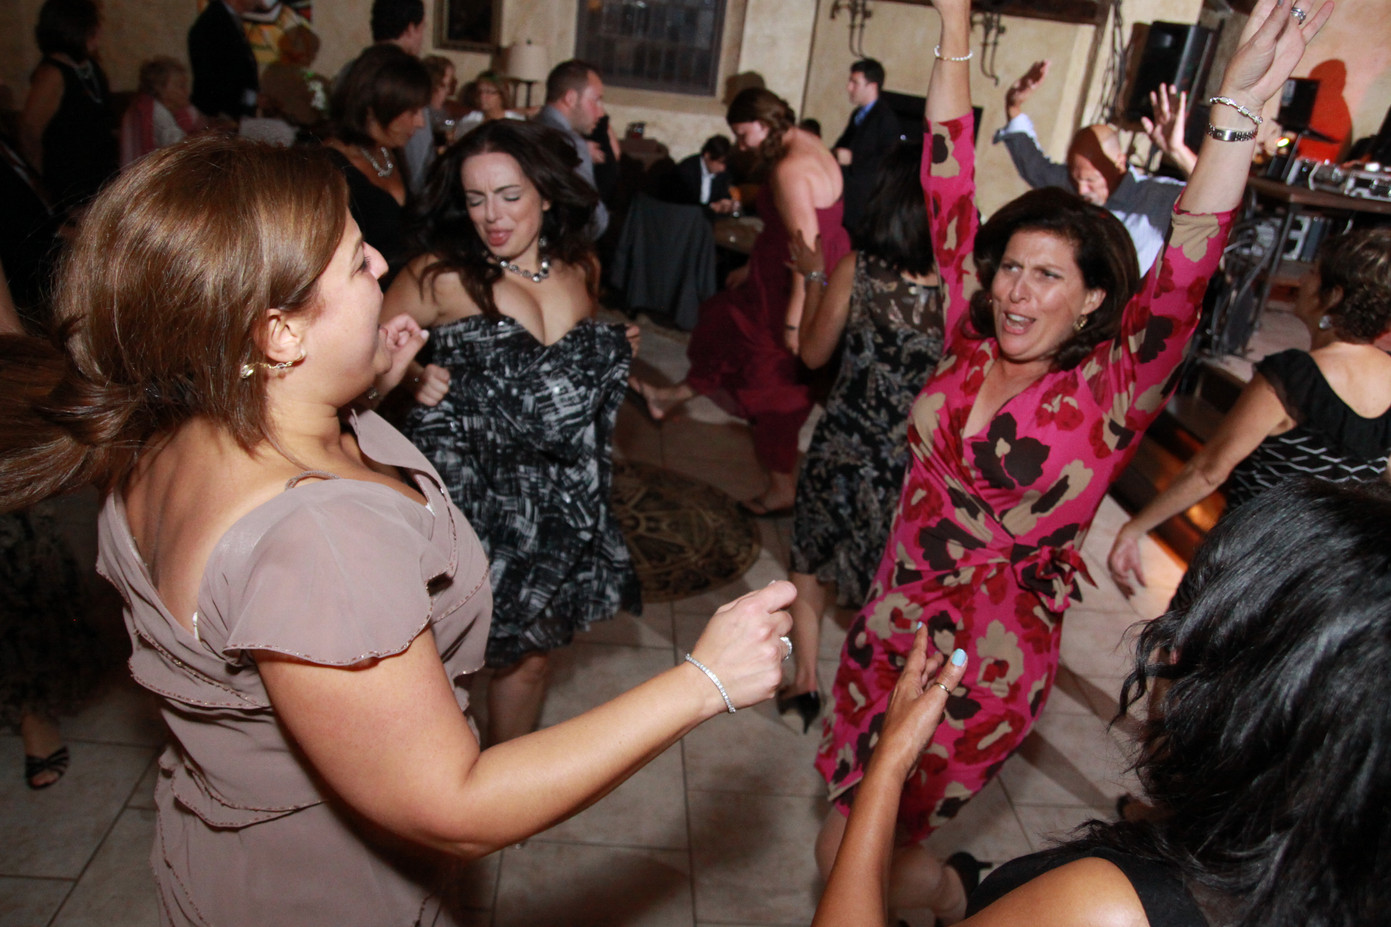 Wedding-Guest-Dancing.JPG